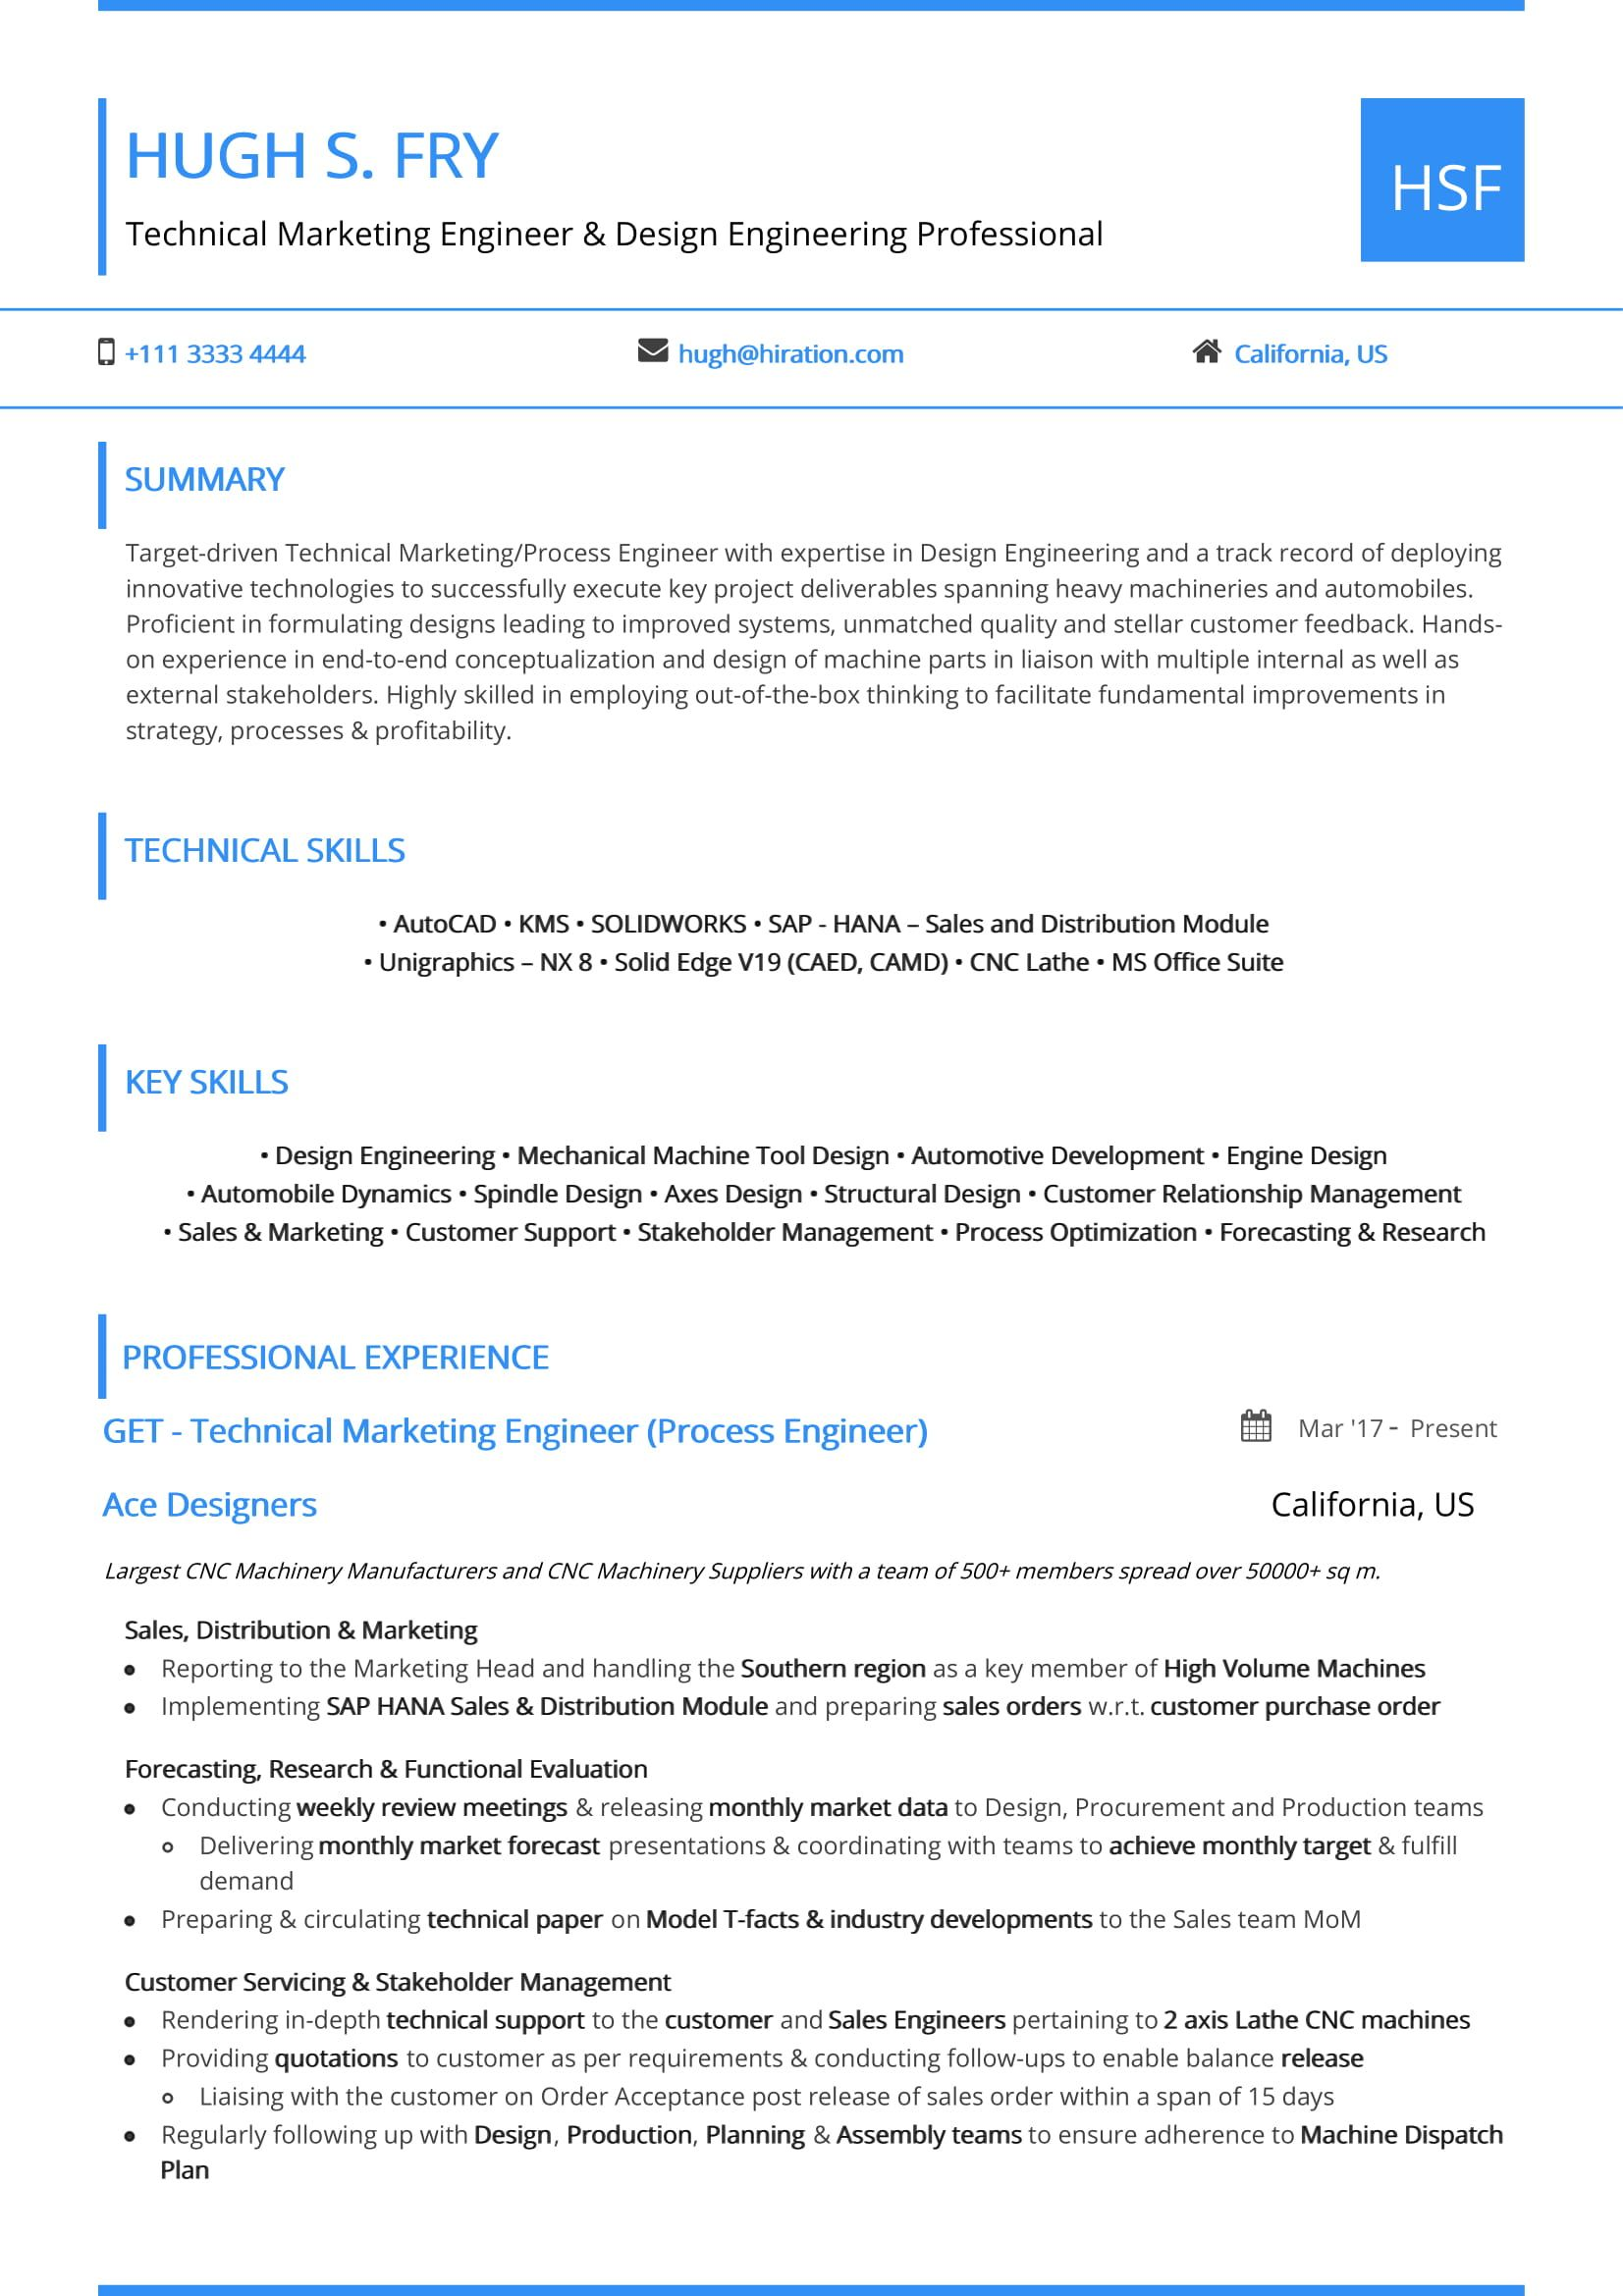 skills to put on resume the guide with sample for customer service tech energy engineer Resume Skills To List On Resume For Customer Service